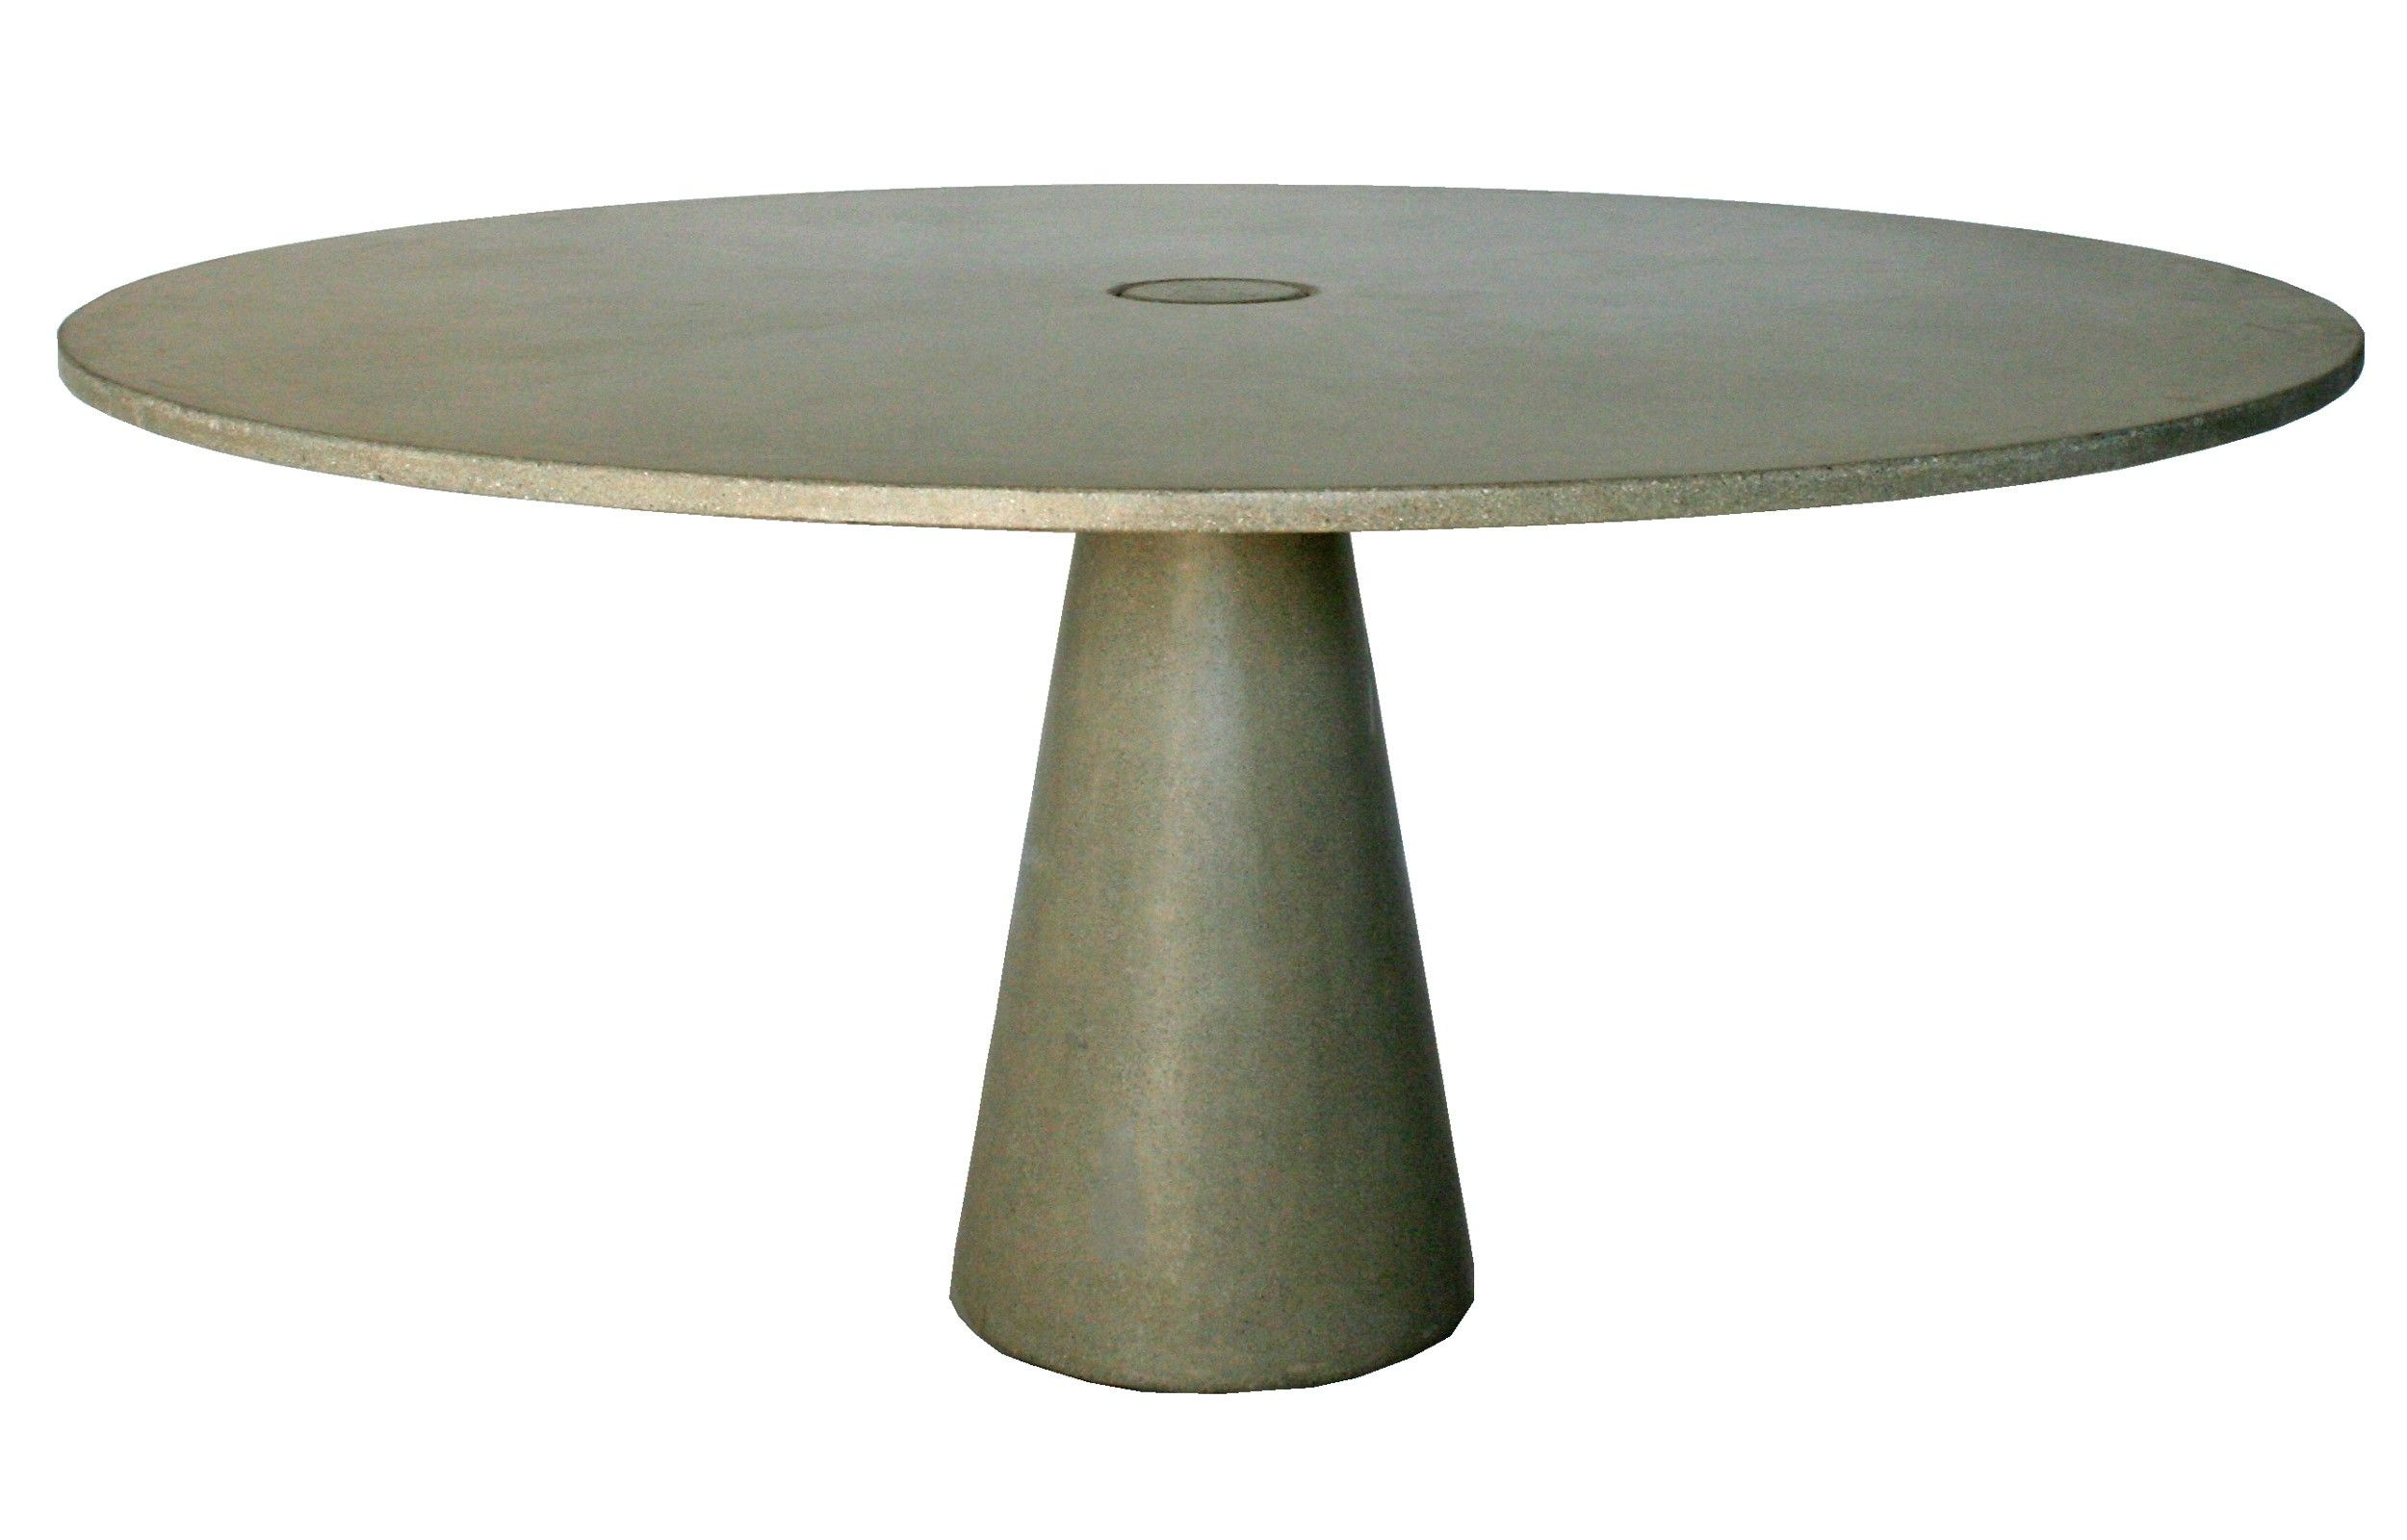 James De Wulf Locking Round Dining Table Concrete Dining Table Dining Table Round Concrete Dining Table